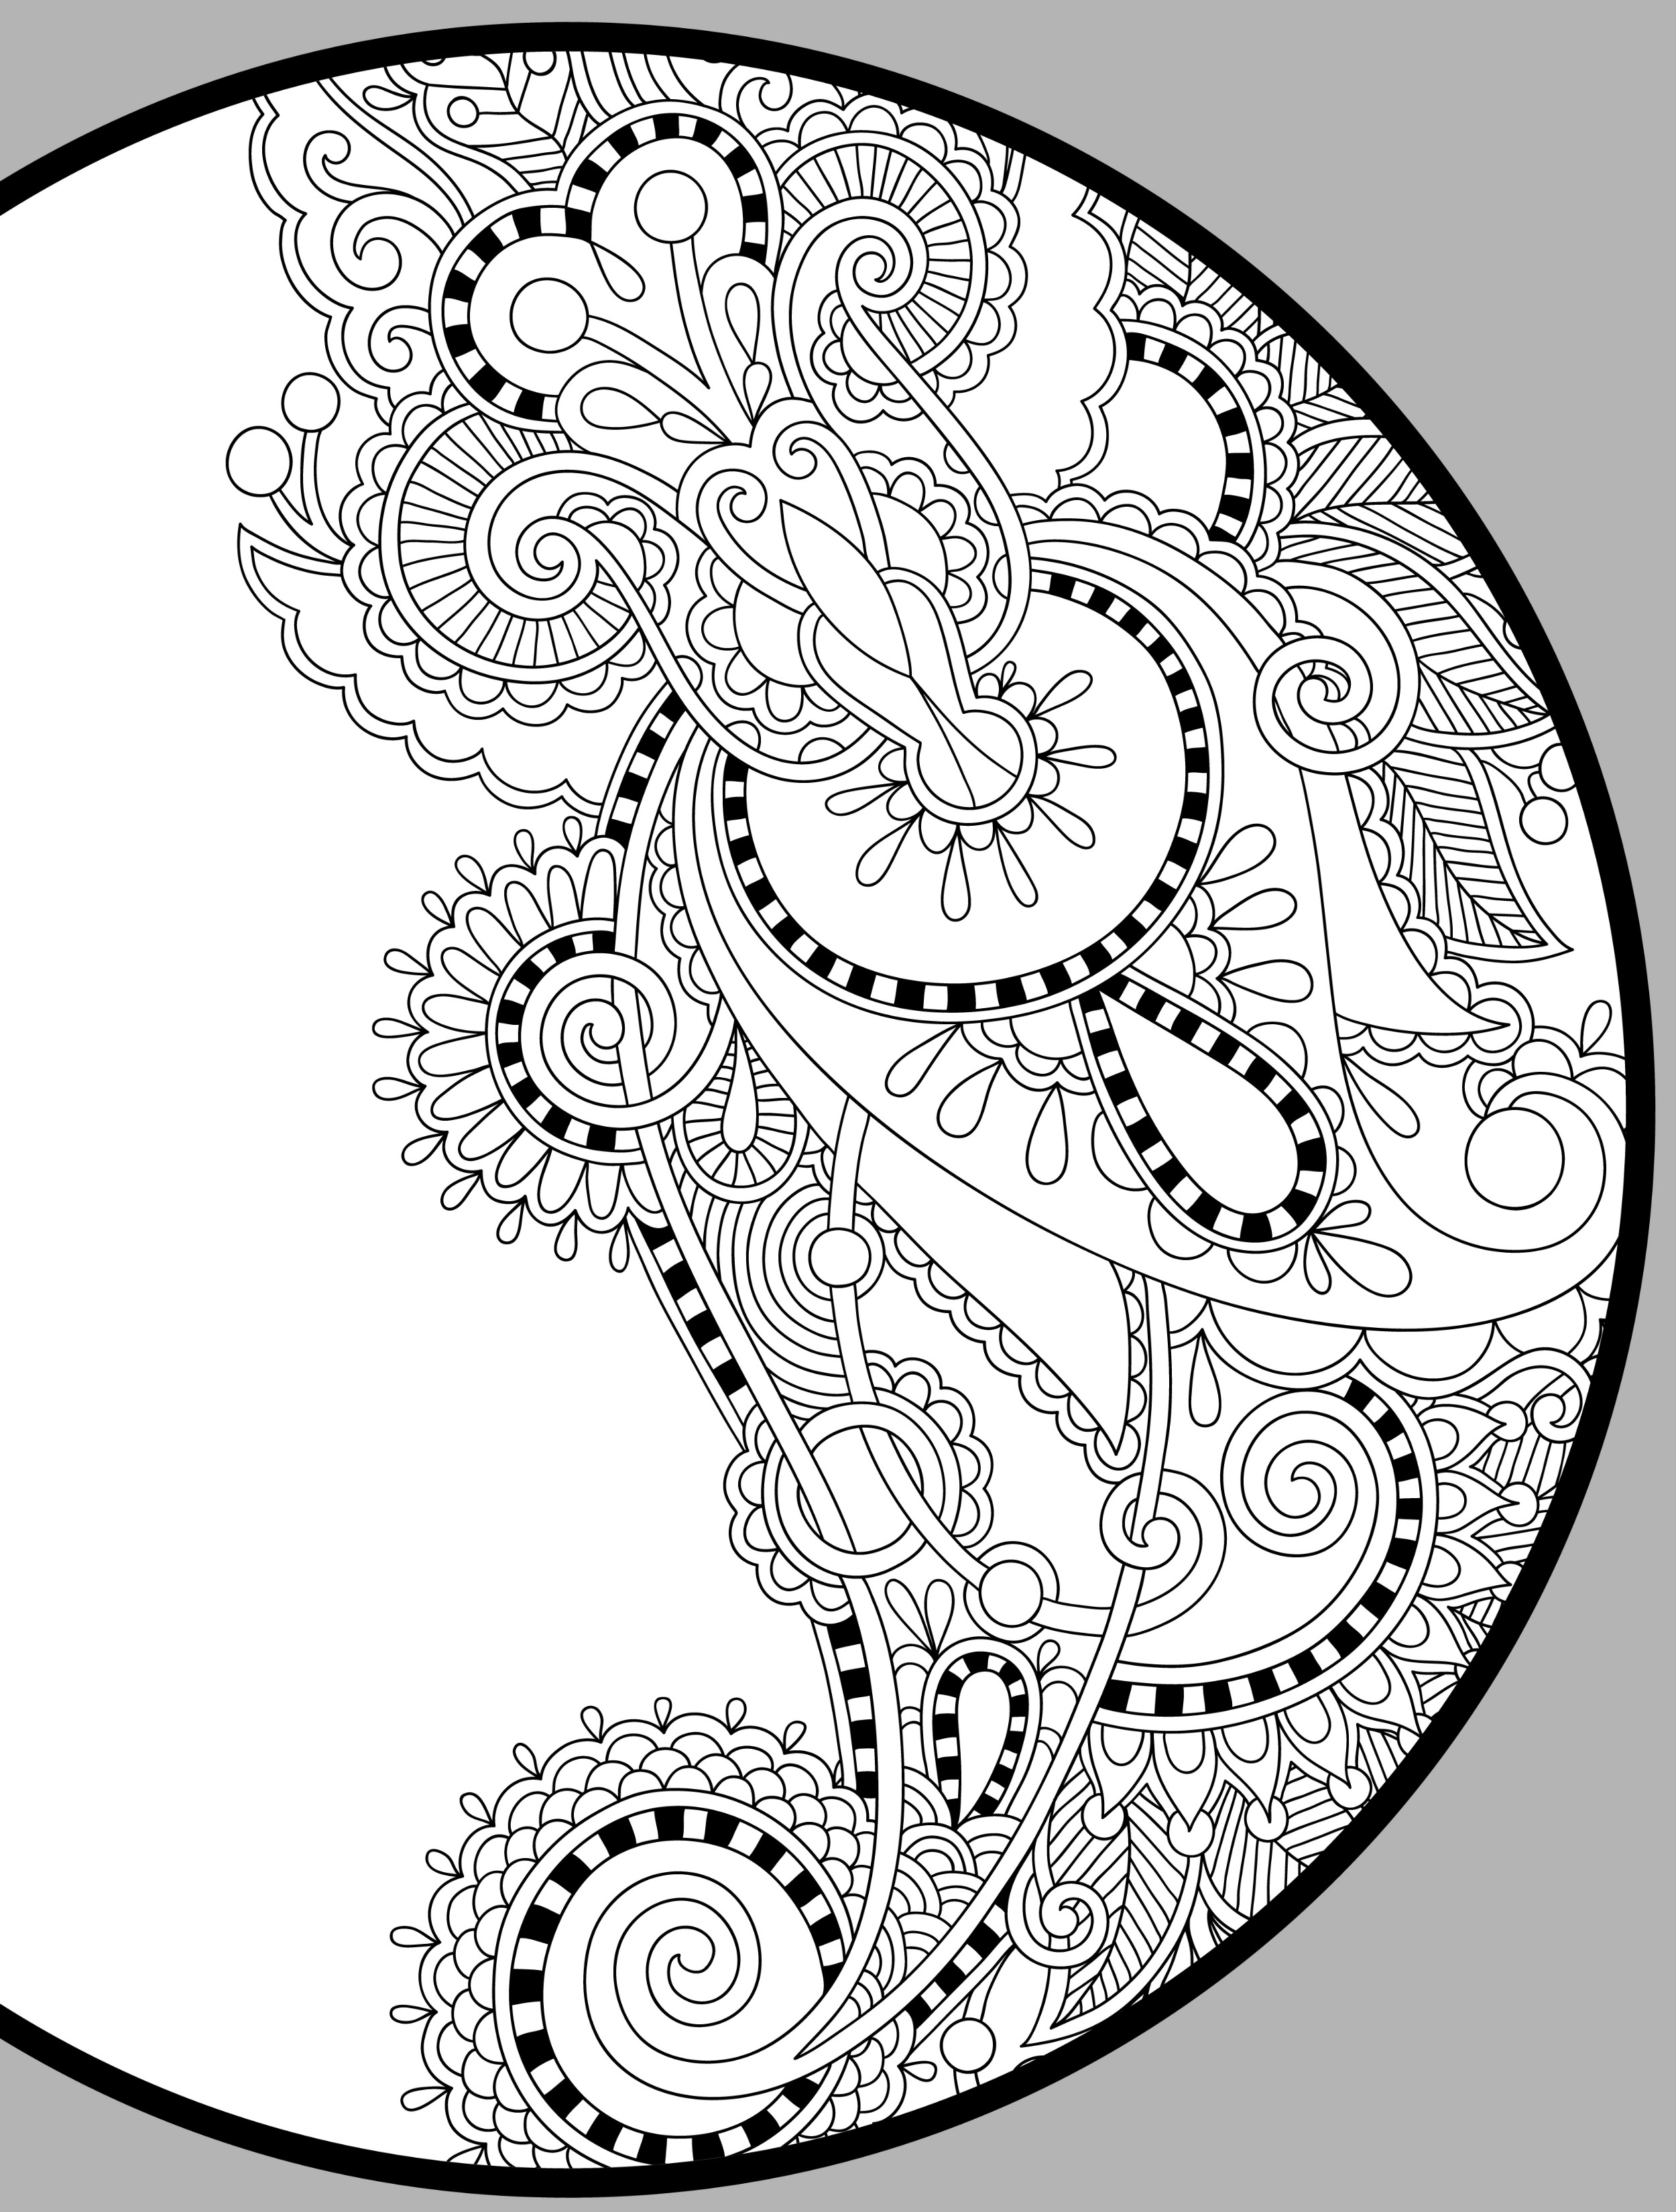 mandala coloring pages for adults free abstract mandala coloring page for adults digital download pages coloring mandala free adults for